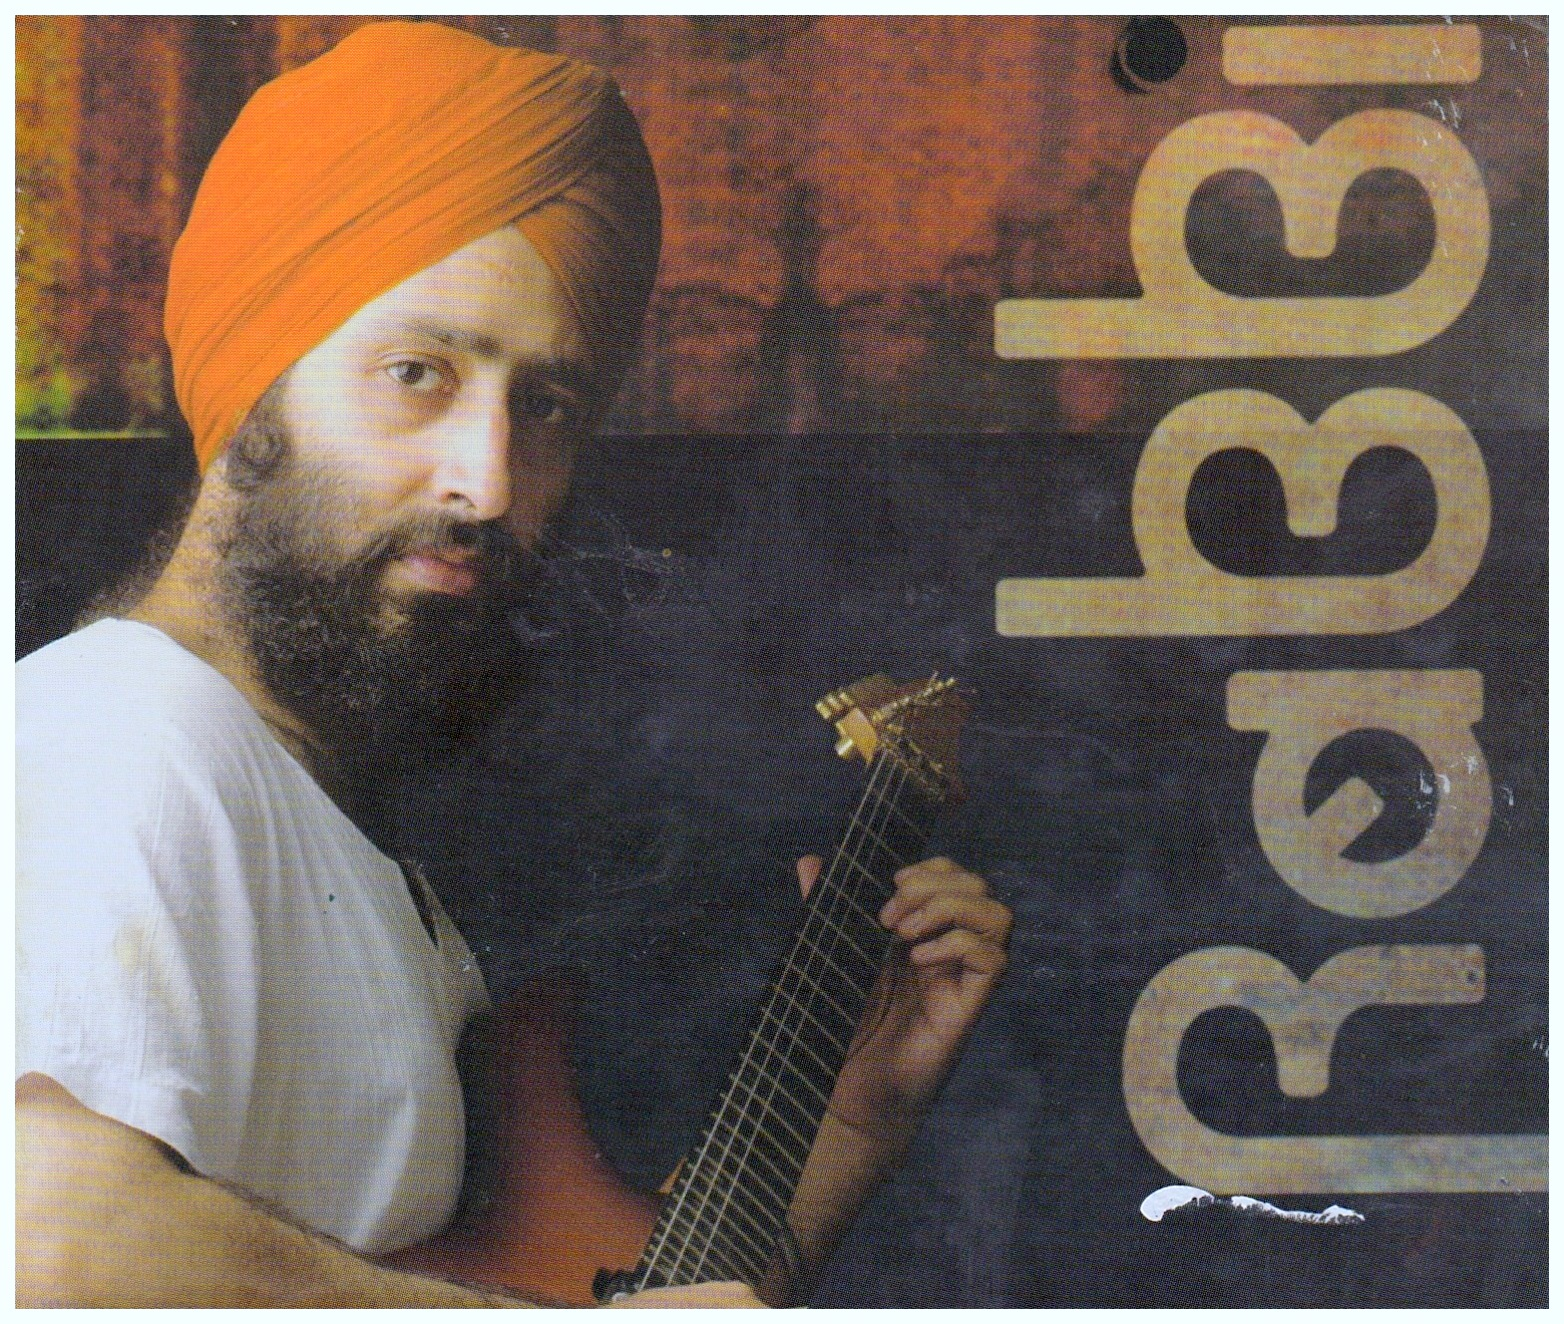 Tere bin by rabbi shergill free mp3 download.